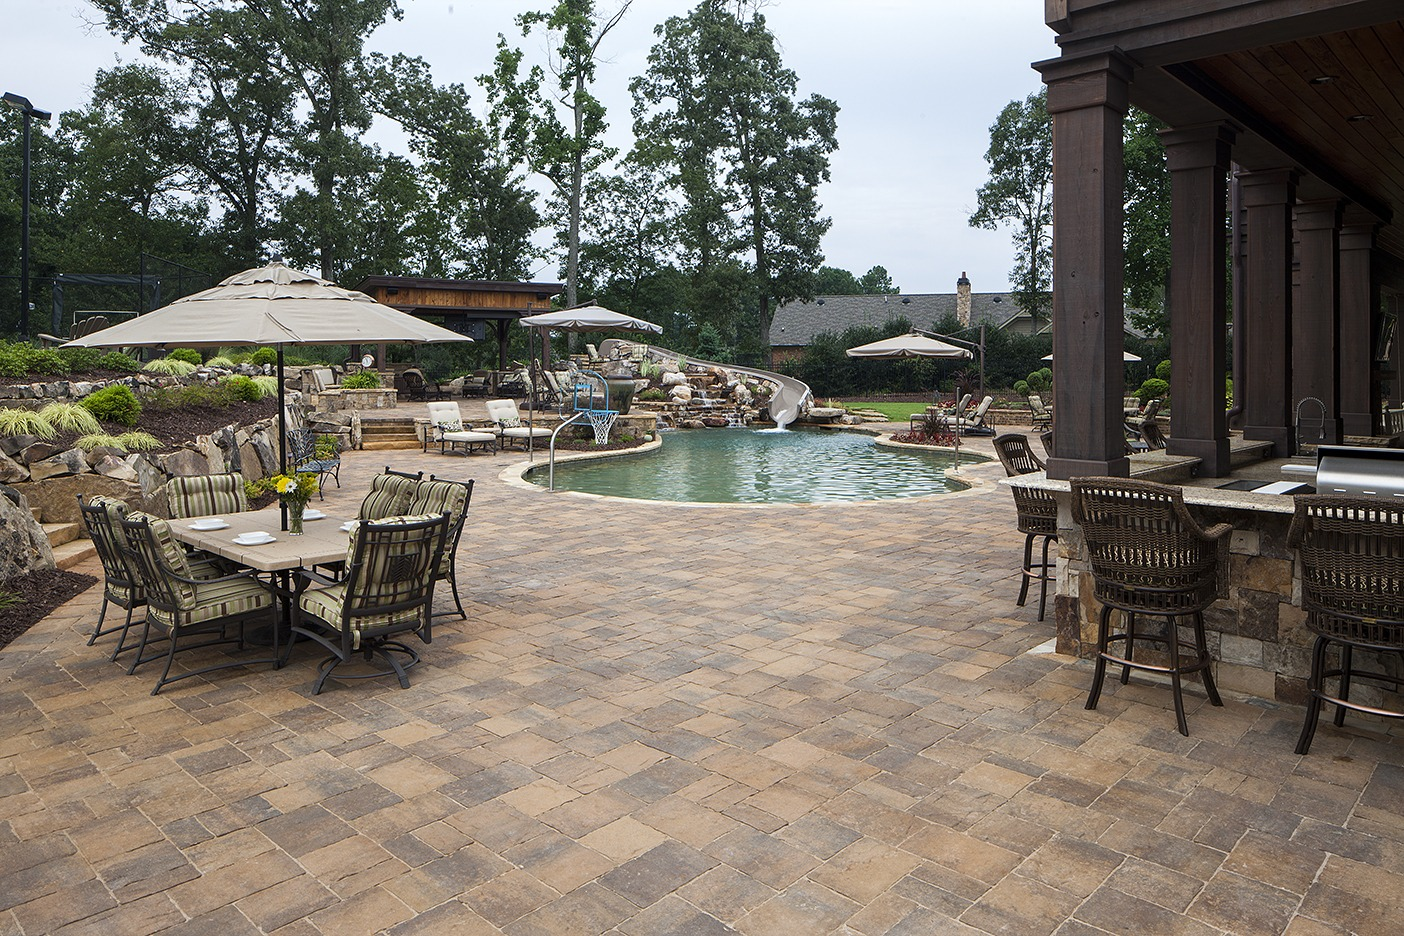 pool deck materials: pavers